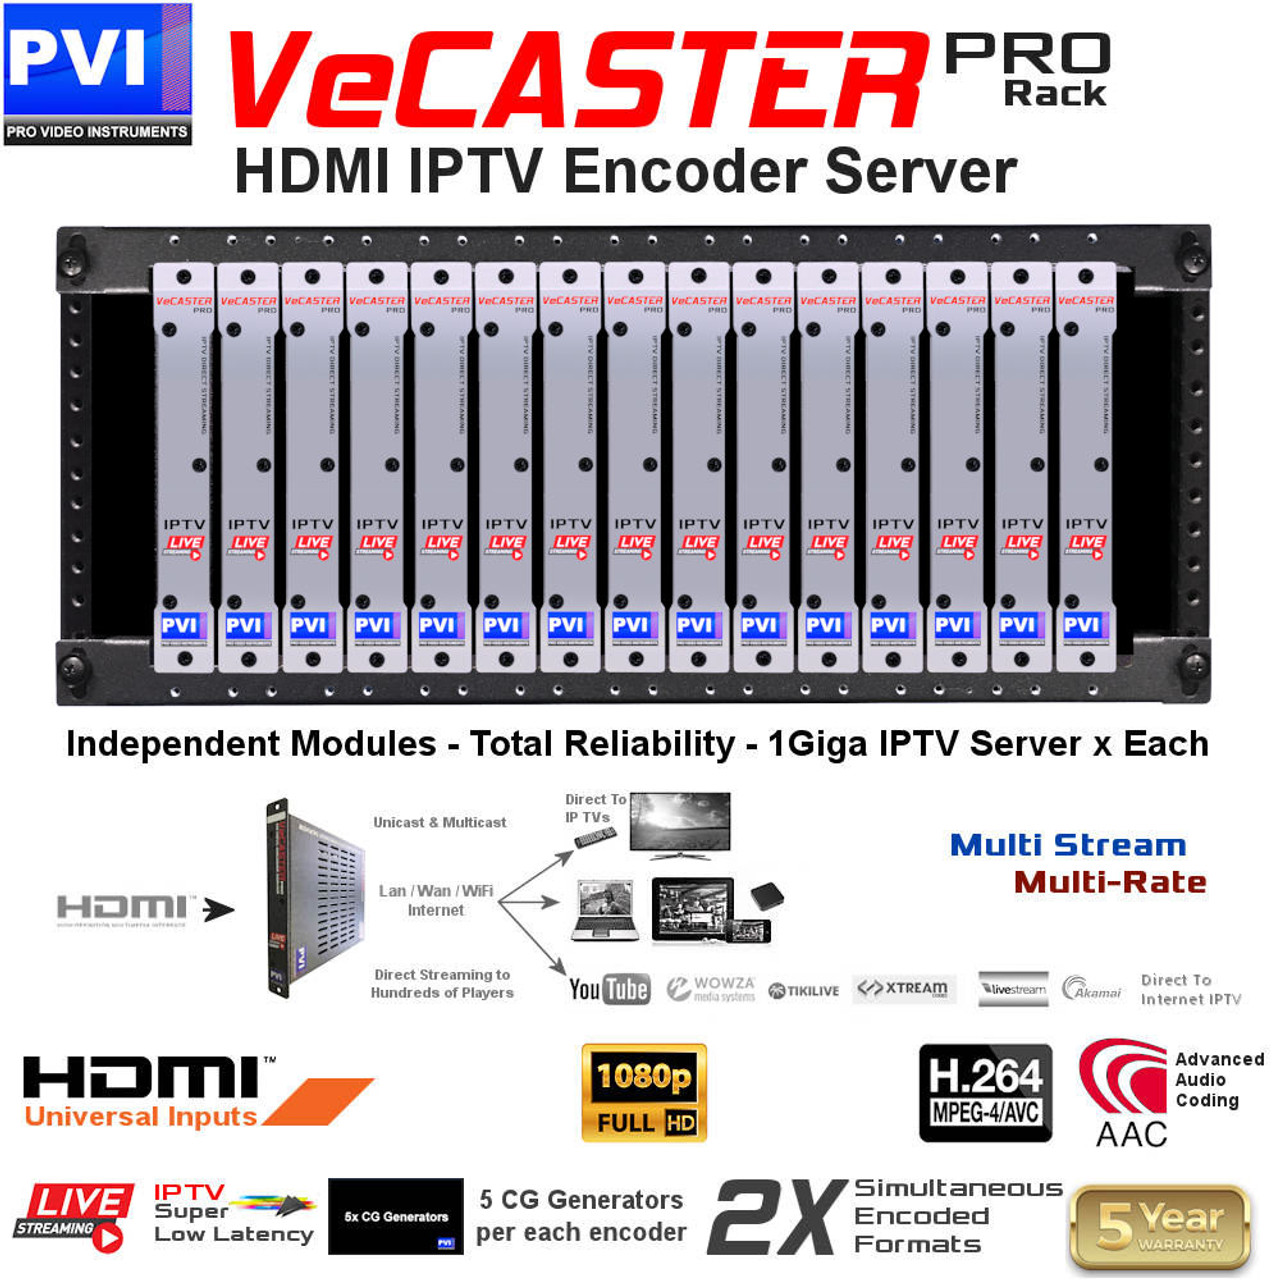 Provideoinstruments Vecaster Hd H264 Professional Single Channel H 264 Encoder Block Diagram Explanation 1080p Iptv Rack Mount